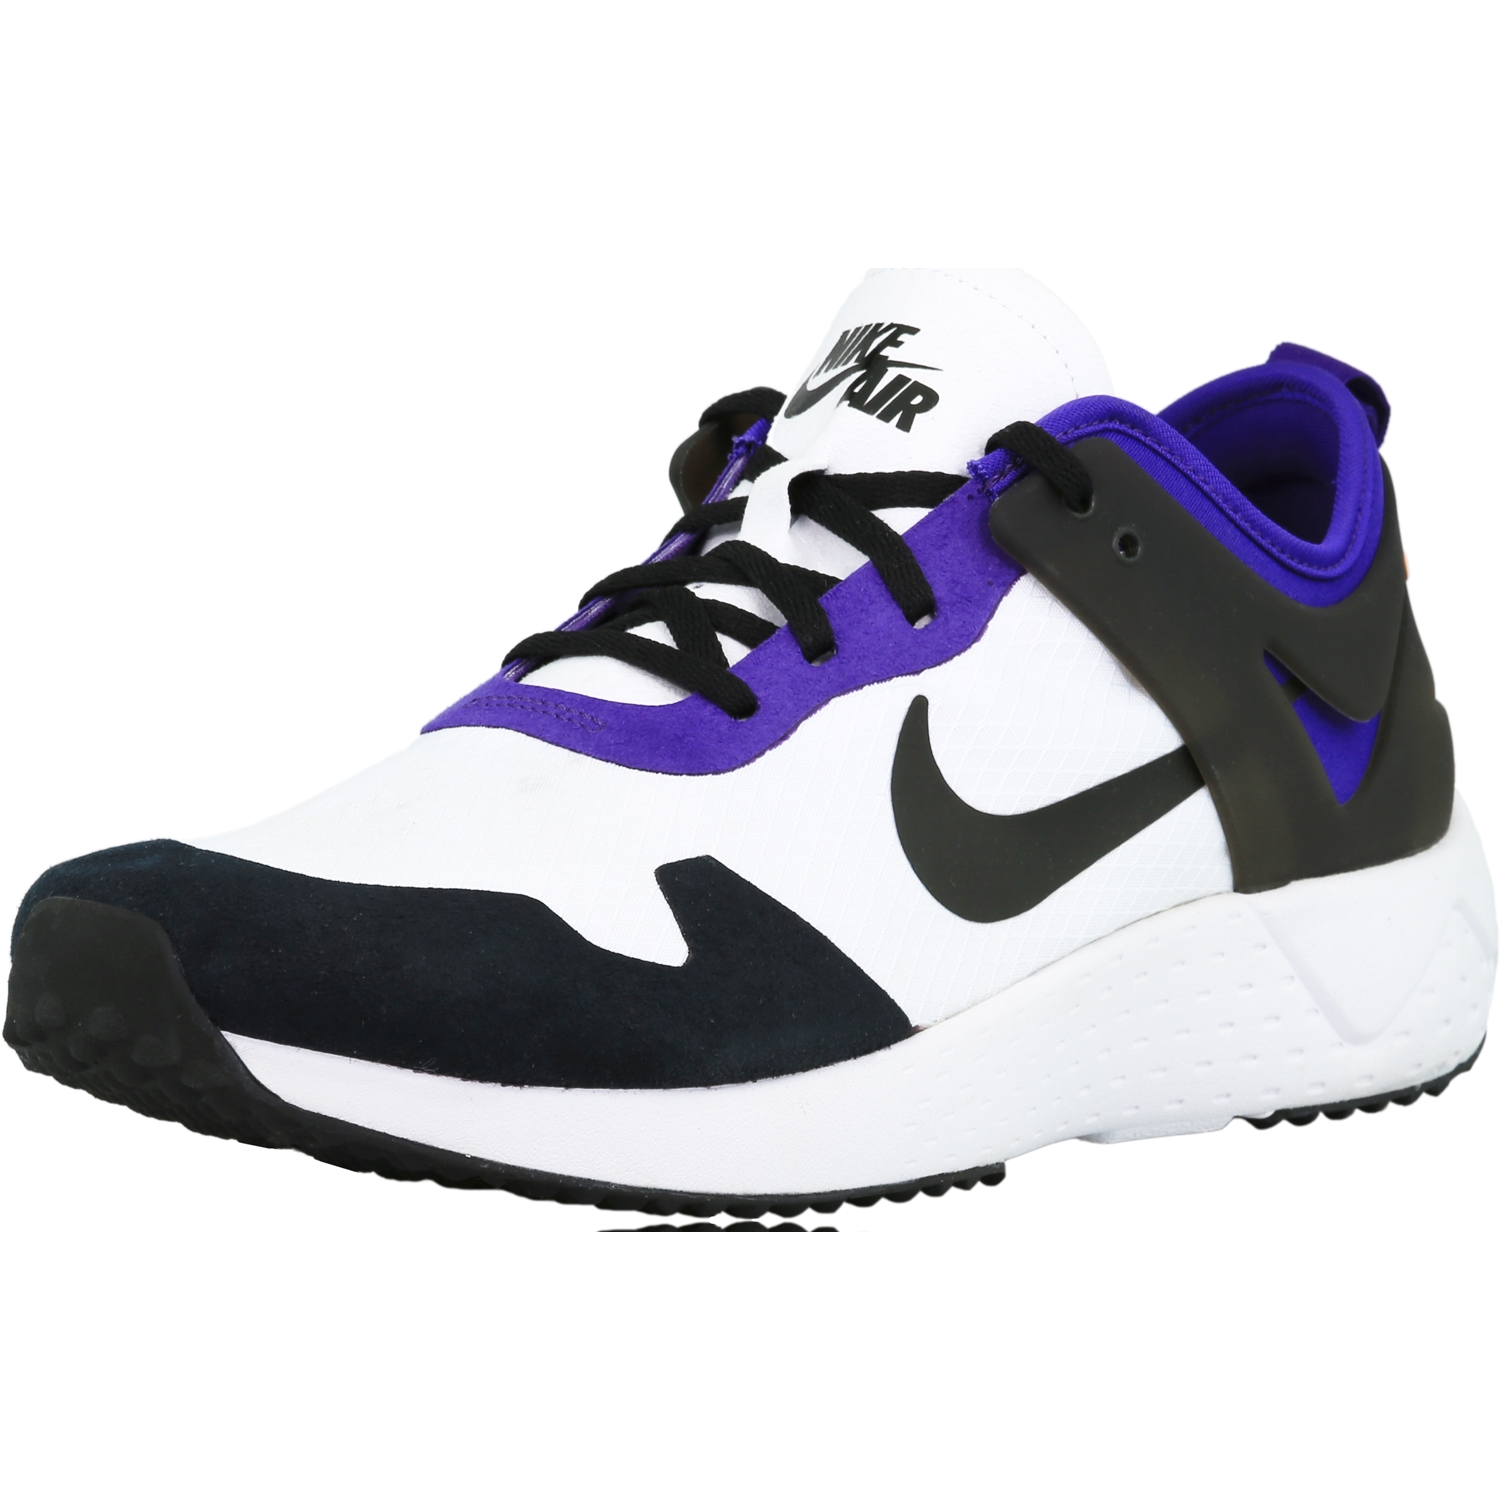 b12c7dac7 italy nikeairforce1mid07lv8 i84165 f3e30 dab19; germany nike mens zoom lite  white black court purple bright citrus ankle high 79af2 0b7a9